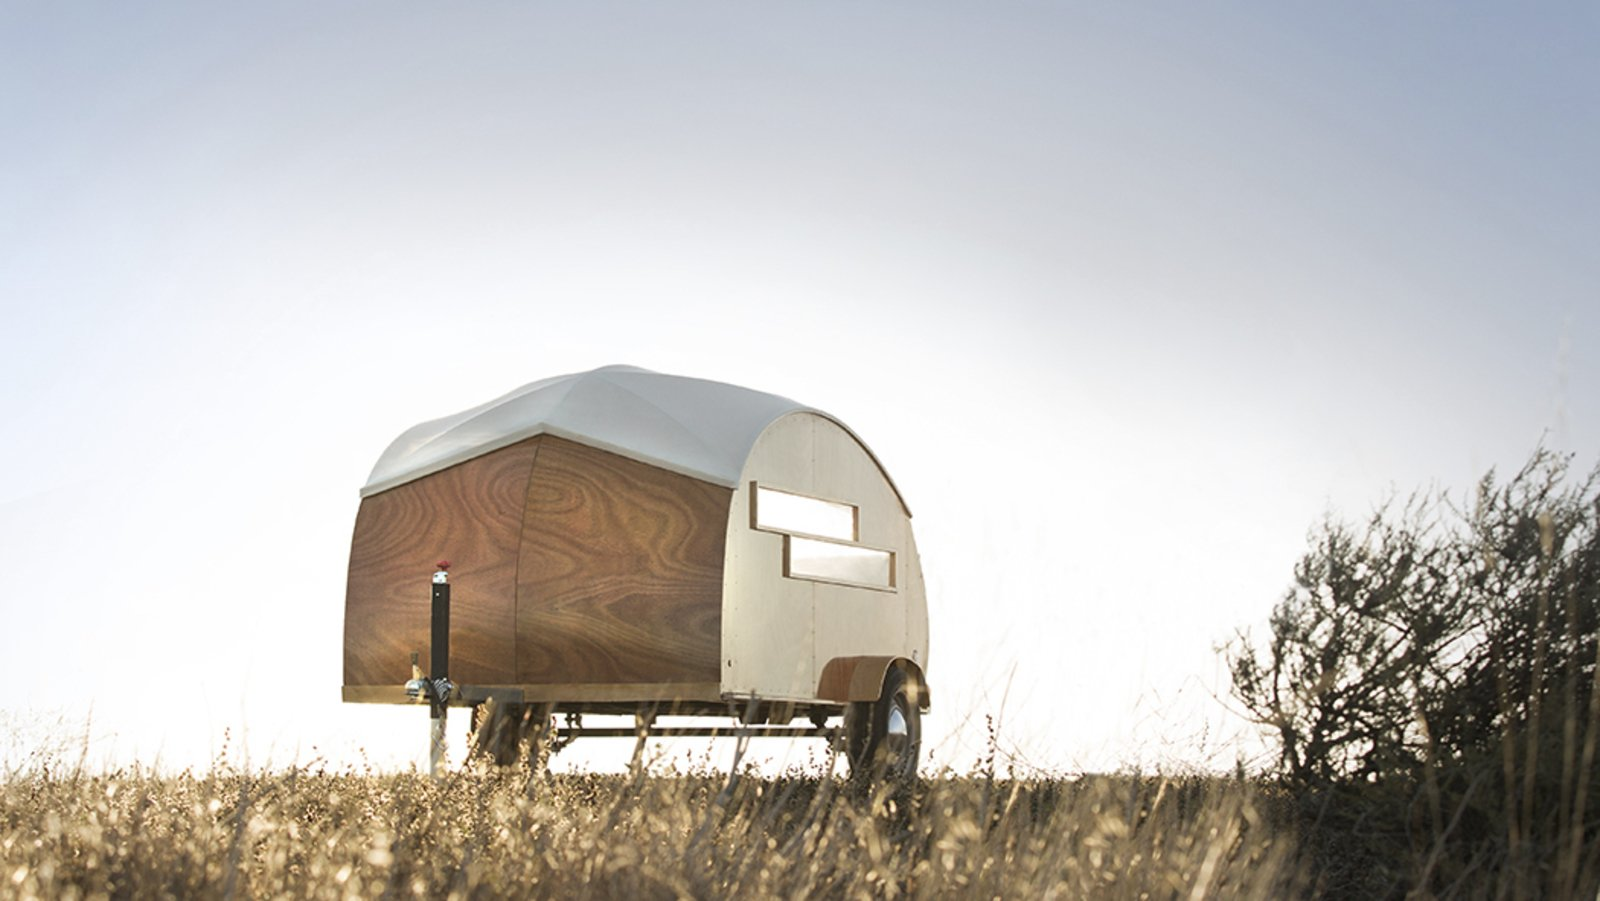 Exterior and Camper Building Type The jaunty boat-like shell of the Hütte Hut began with a case study undertaken by Brian and Katrina Manzo, a husband-and-wife team of industrial designers behind Sprouting Sprocket Studio.  Best Photos from 10 Tiny Trailers to Take on an Adventure